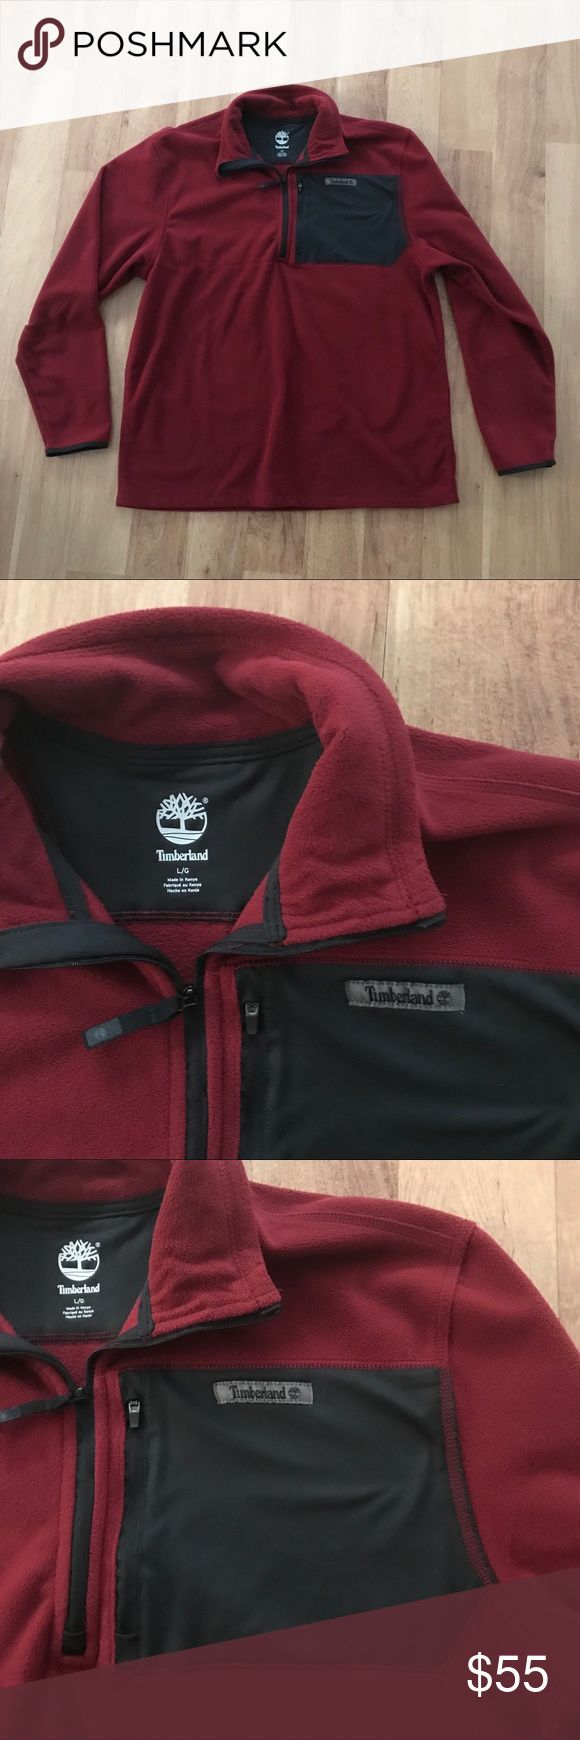 Timberland Men's Red & Black Fleece Jacket Size L ⚜️I love receiving offers through the offer button!⚜️ Good condition, as seen in pictures! Fast same or next day shipping!📨 Open to offers but I don't negotiate in the comments so please use the offer button😊 Check out the rest of my closet for more Adidas, Lululemon, Tory Burch, Urban Outfitters, Free People, Anthropologie, Topshop, Asos, Revolve, Zara, and American Apparel! 1. Timberland Jackets & Coats